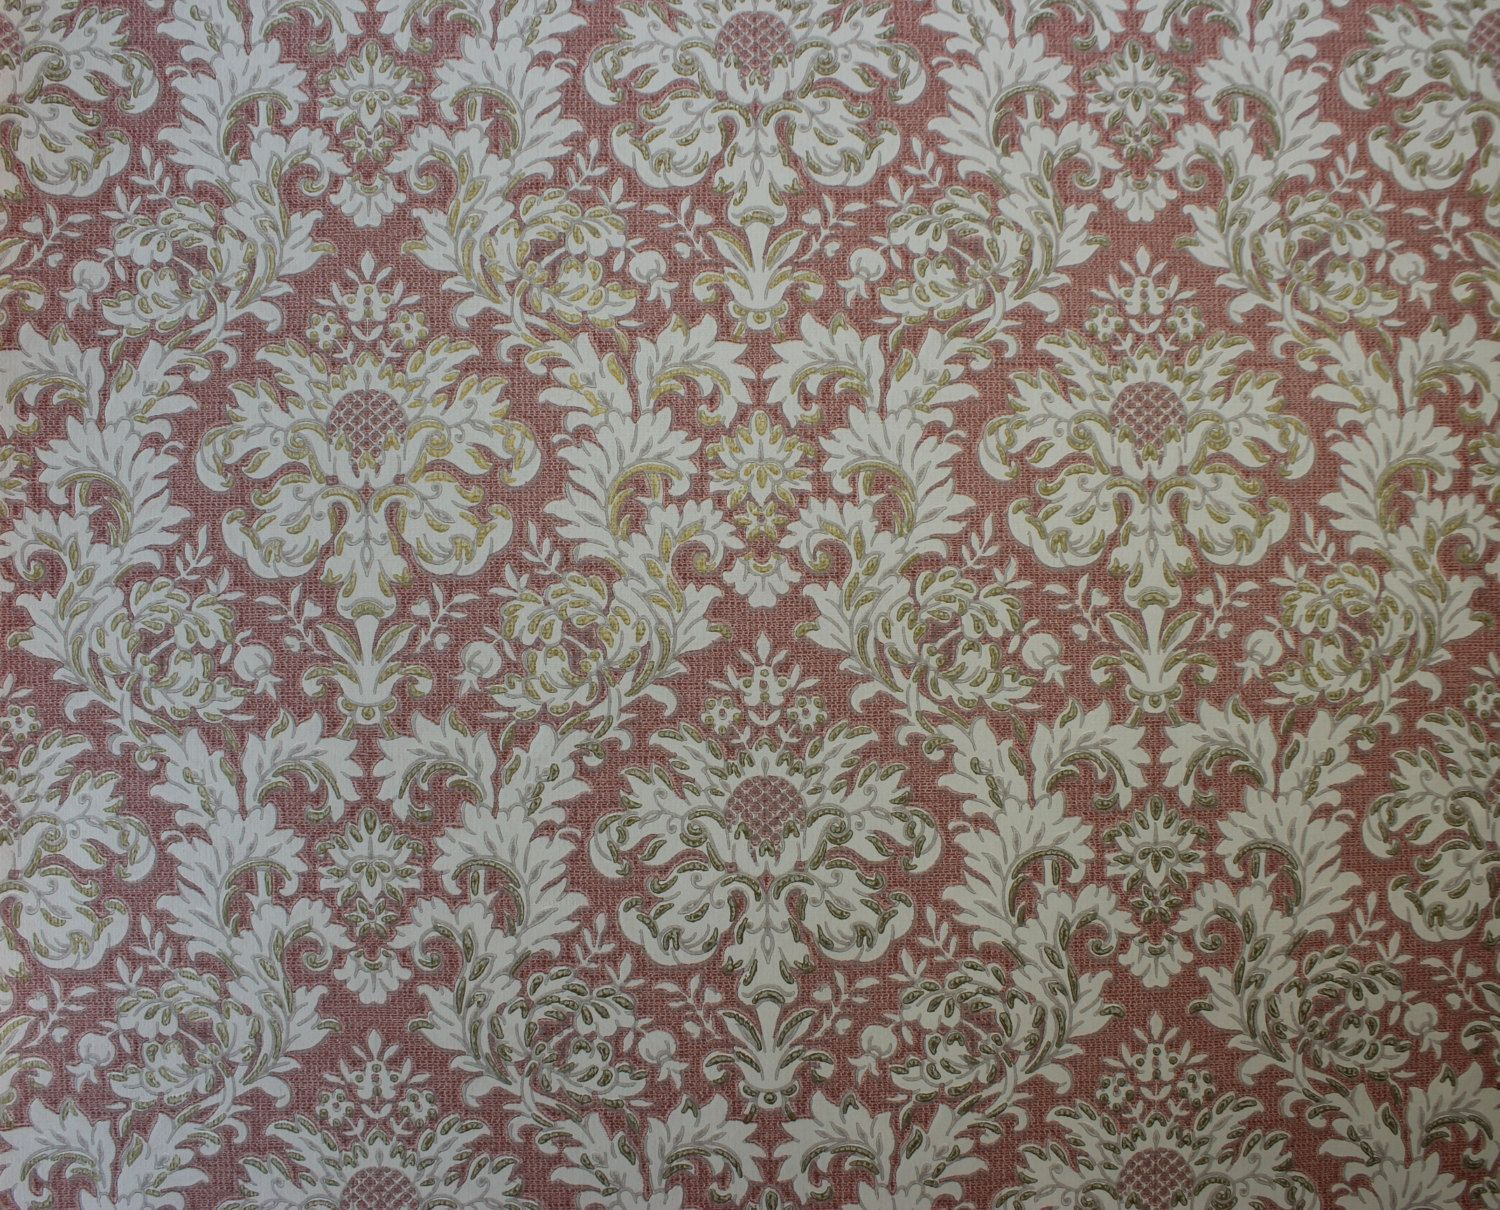 S Vintage Wallpaper White Damask With Gold By Rosieswallpaper